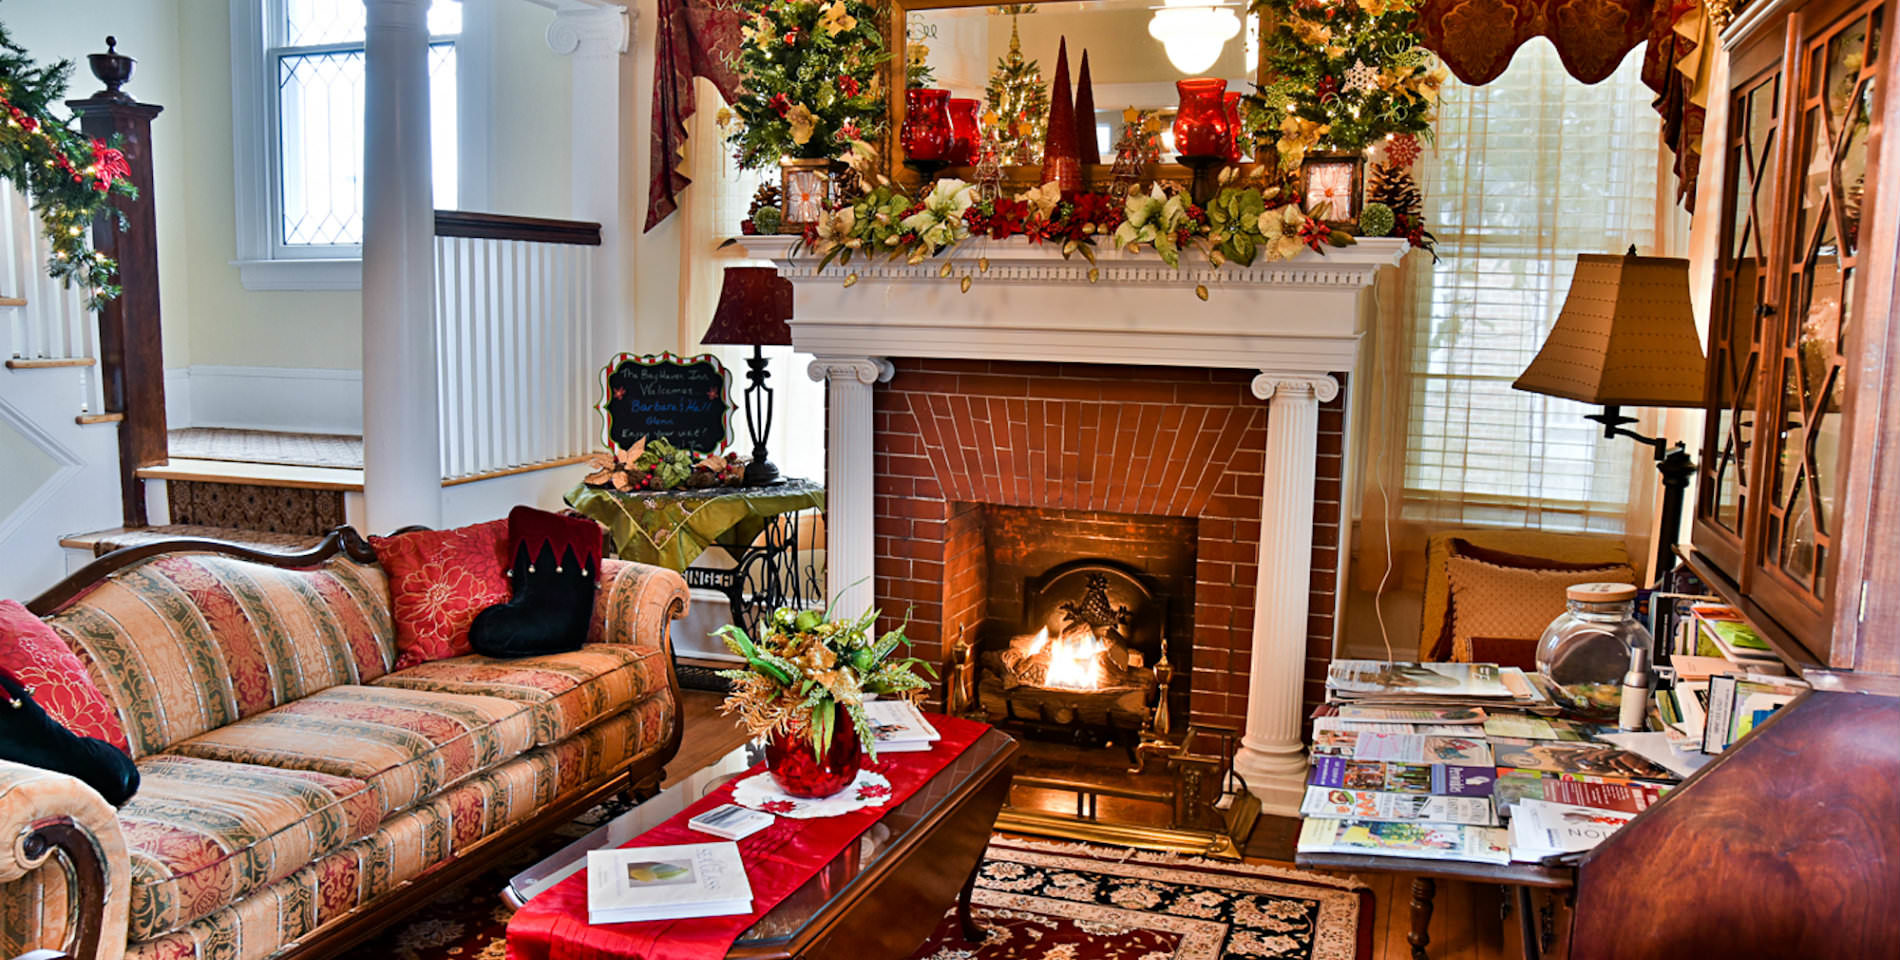 A sitting area adorned with green and yellow leaves with a red brick fireplace and a table covered with magazines.